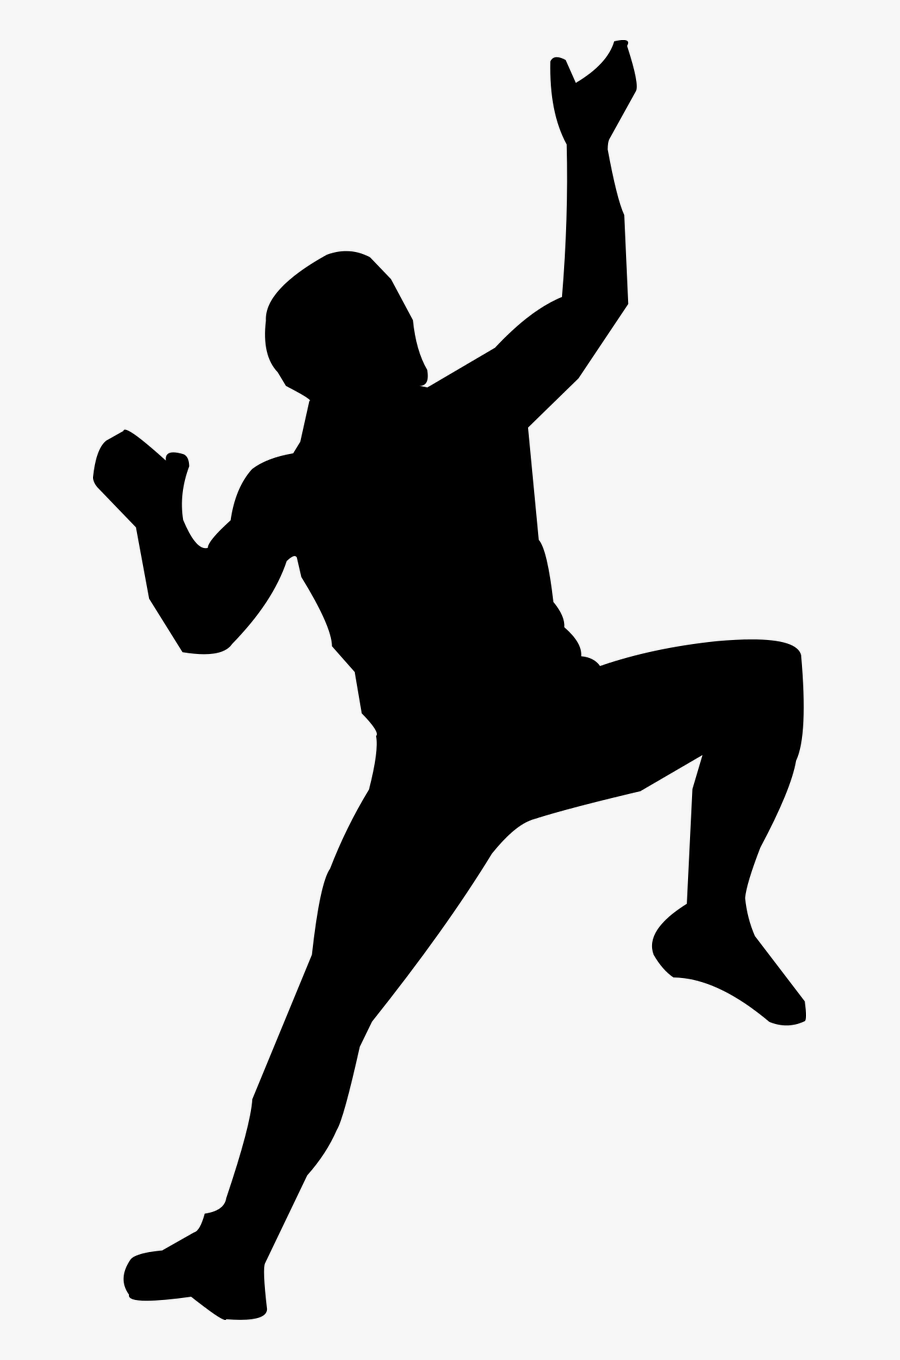 Climbing Man Mountains Free Picture, Transparent Clipart